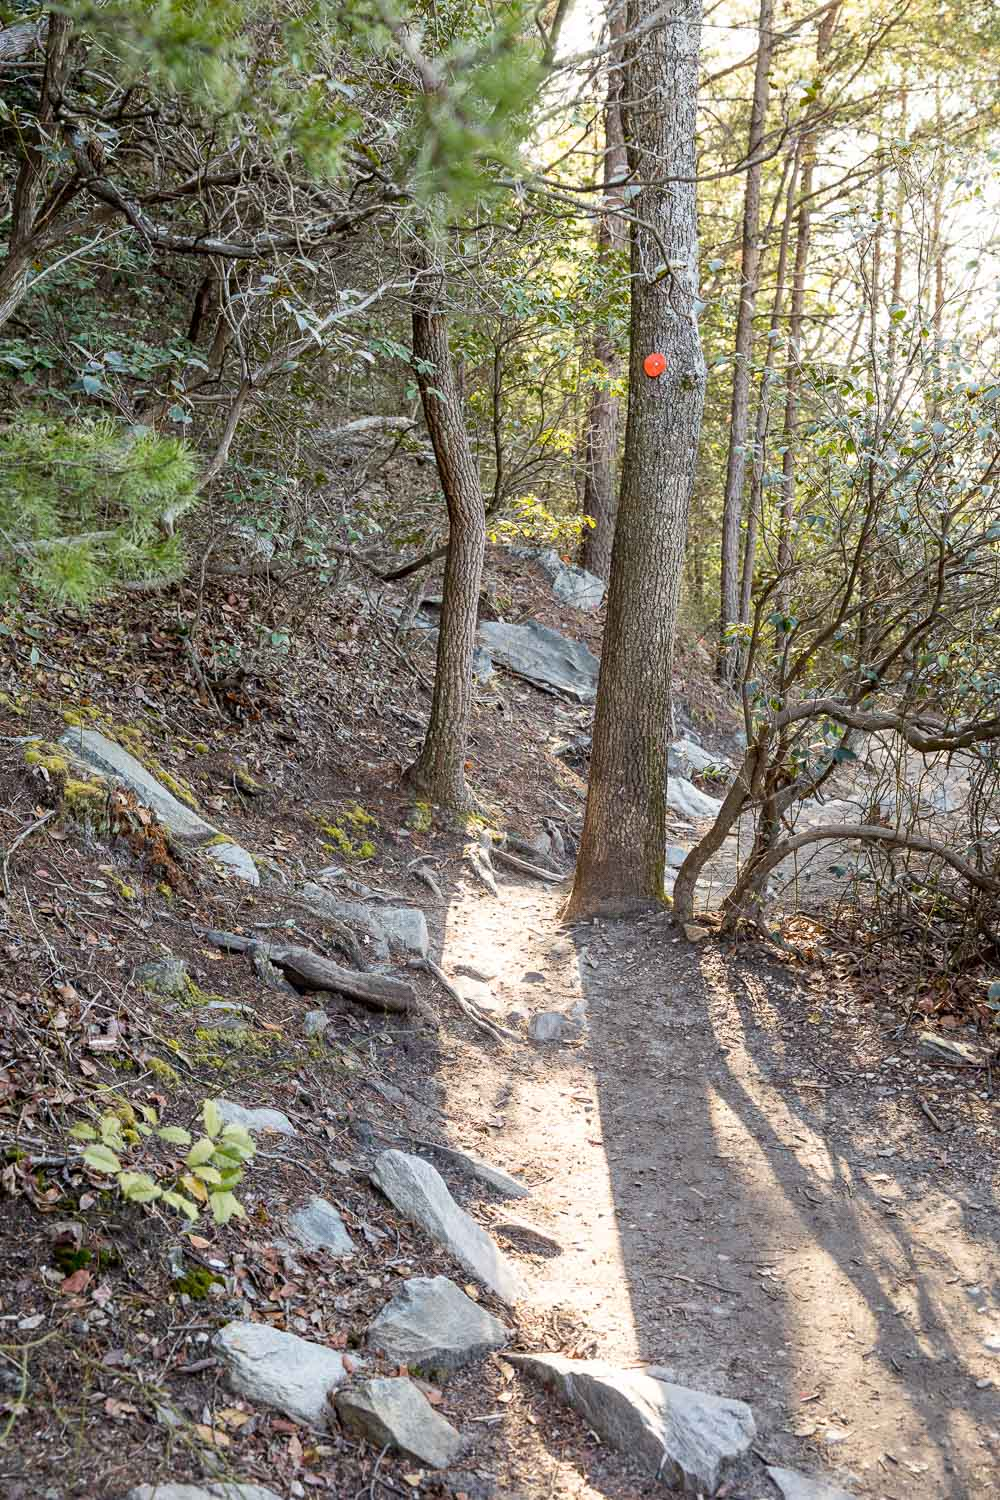 Trails here are well-maintained primitive hiking trails.